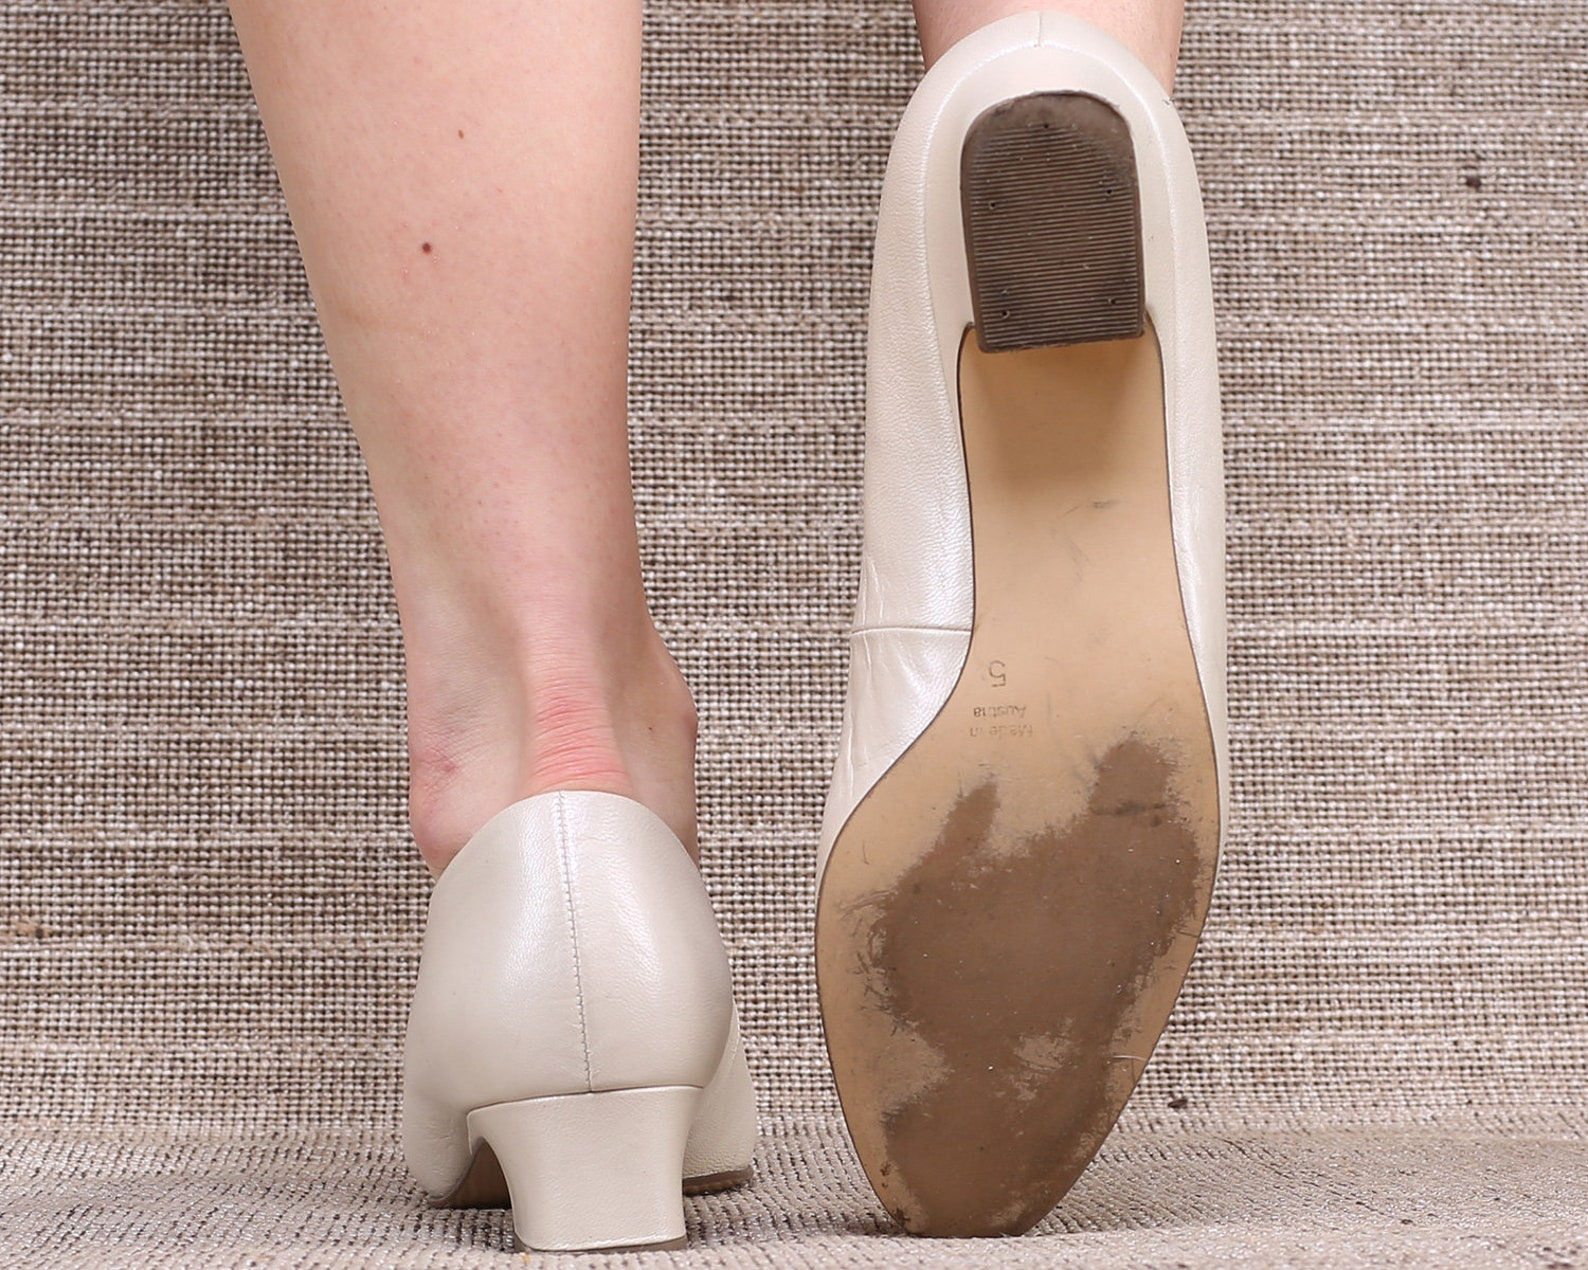 us women 7.5 off white leather flats cream white ballet flats formal office low heel pumps vintage shoes 1980s gabor footwear .